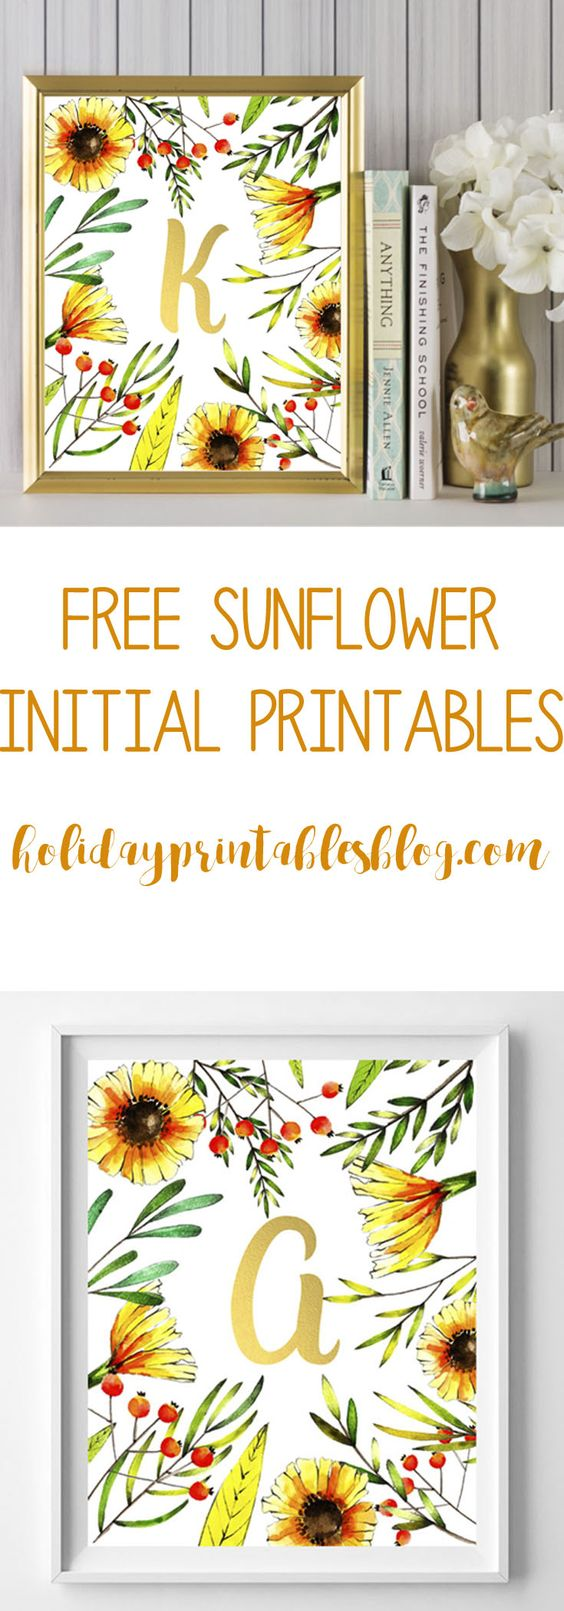 Free sunflower initial printables. Featuring a whimsical sunflower background with gold initials, these printables are perfect for your spring or summer decor or as a gift!: